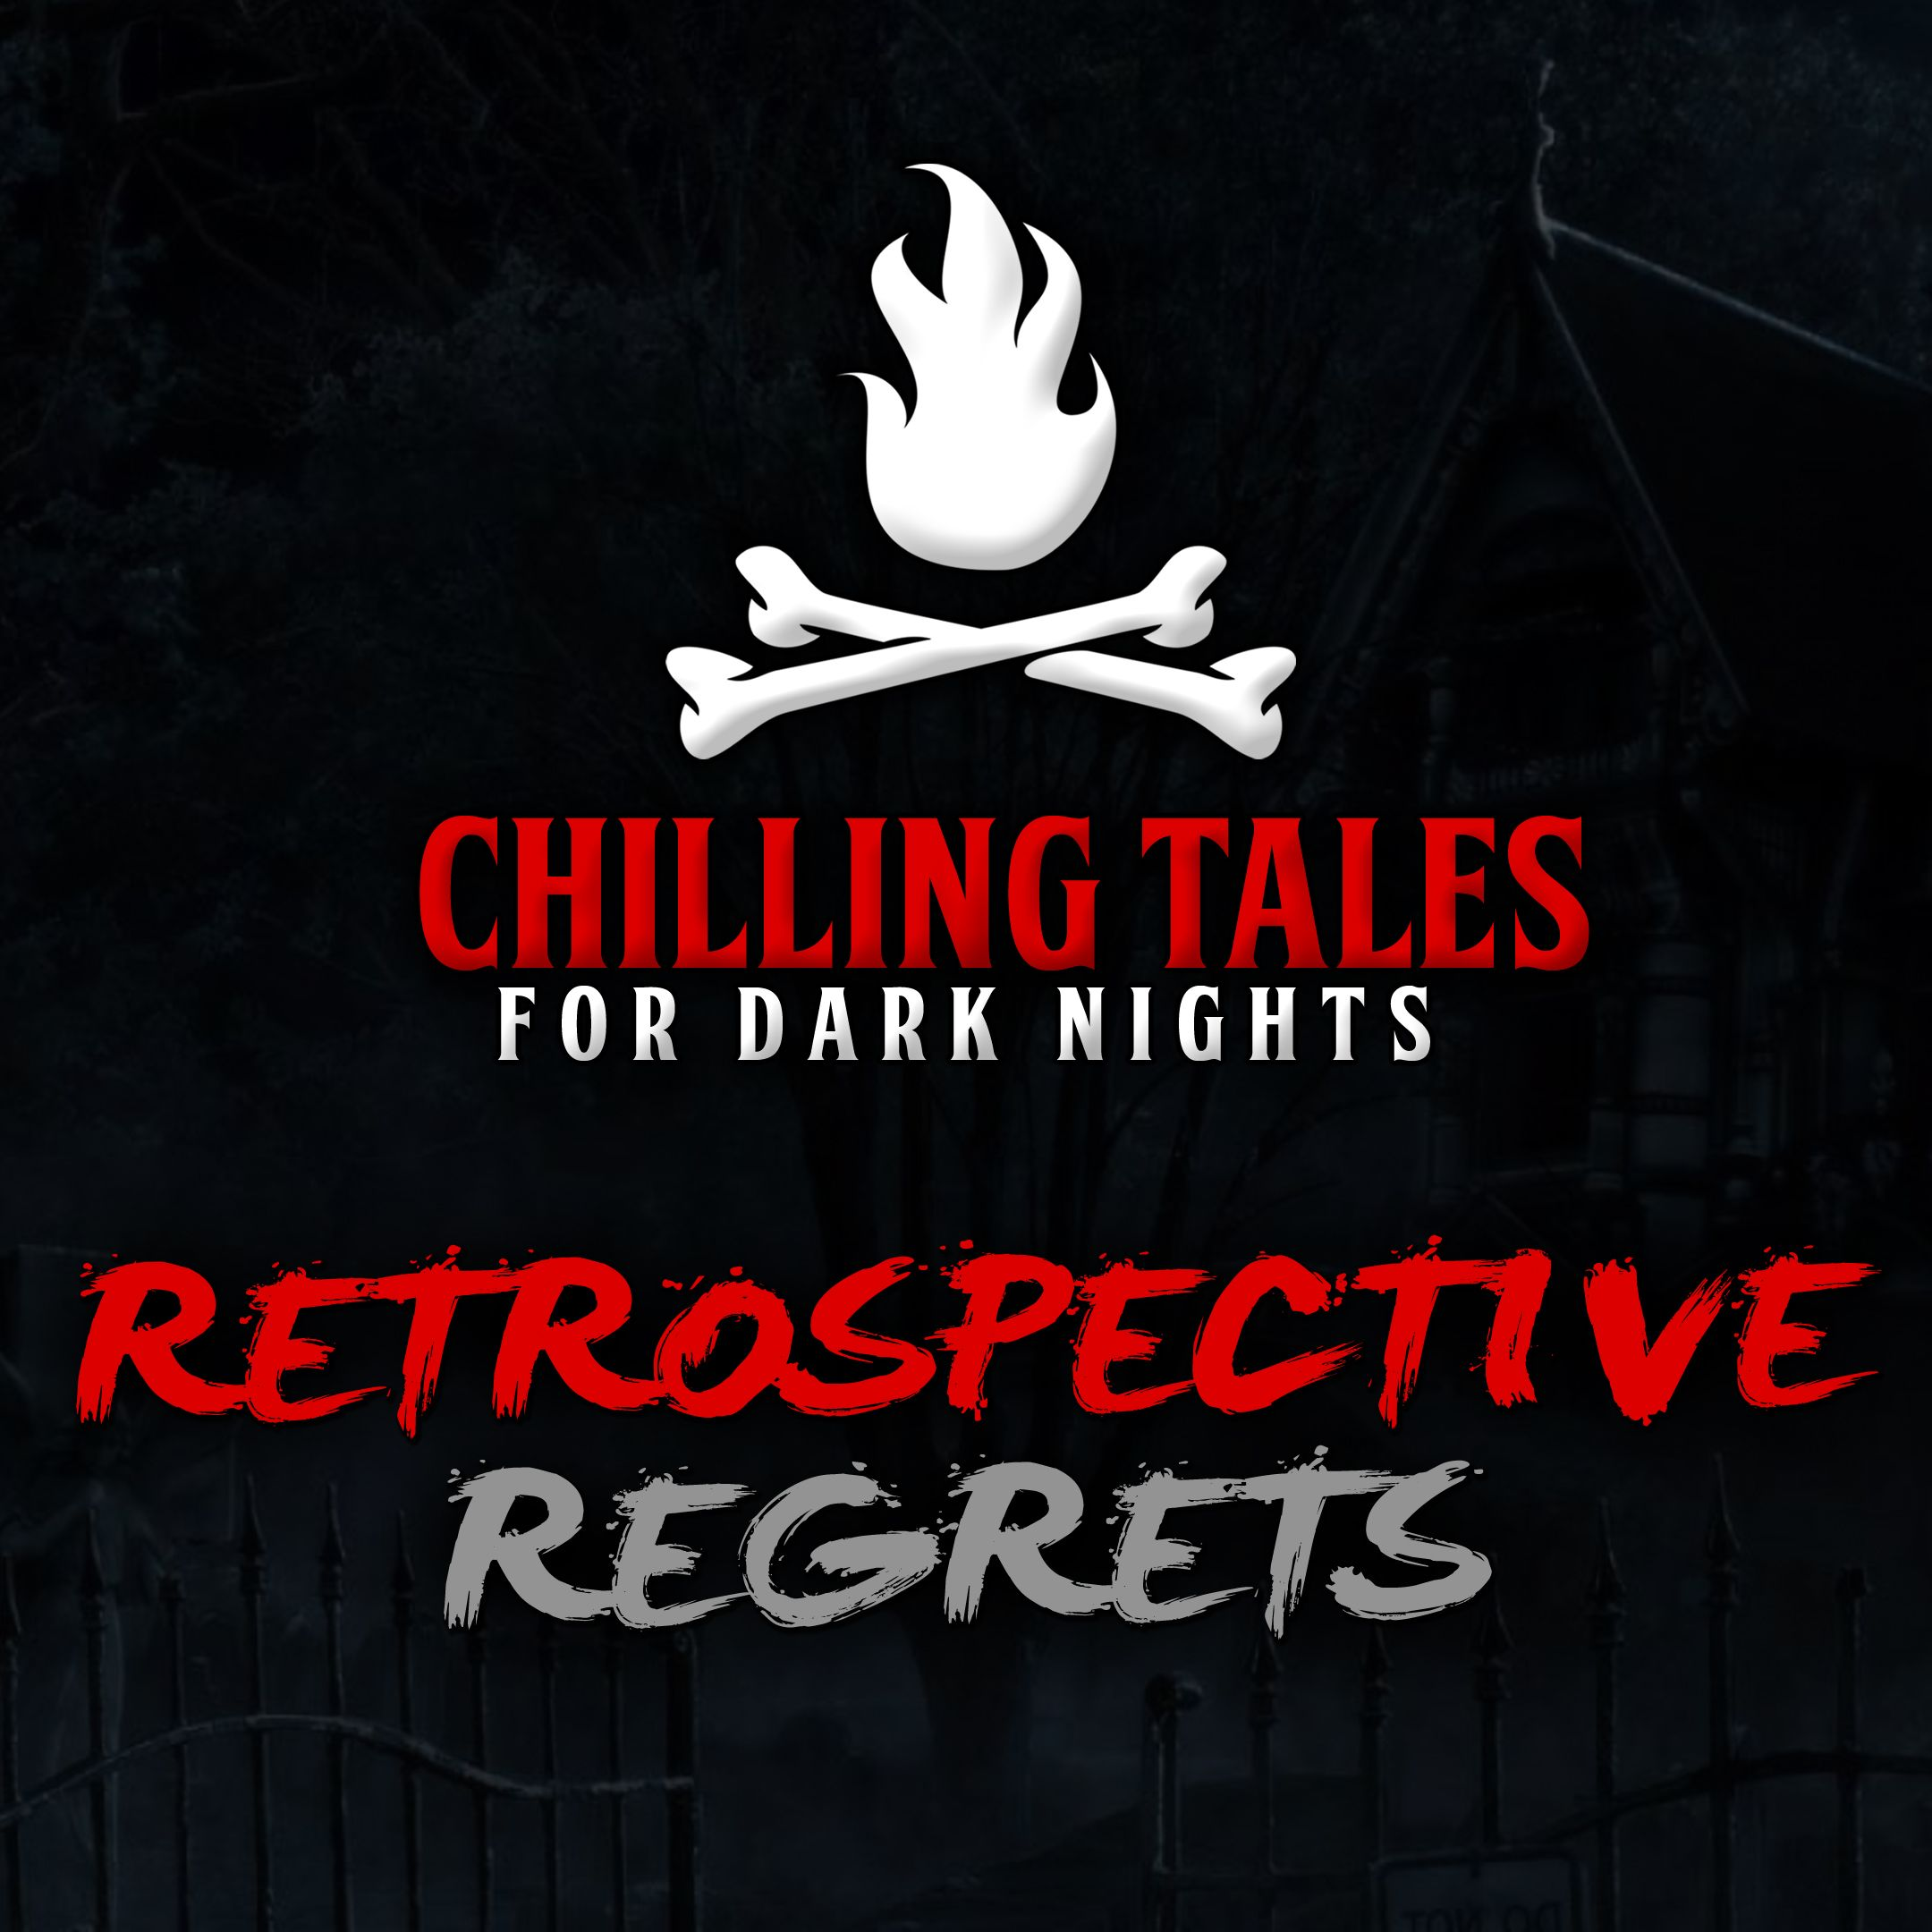 84: Retrospective Regrets – Chilling Tales for Dark Nights